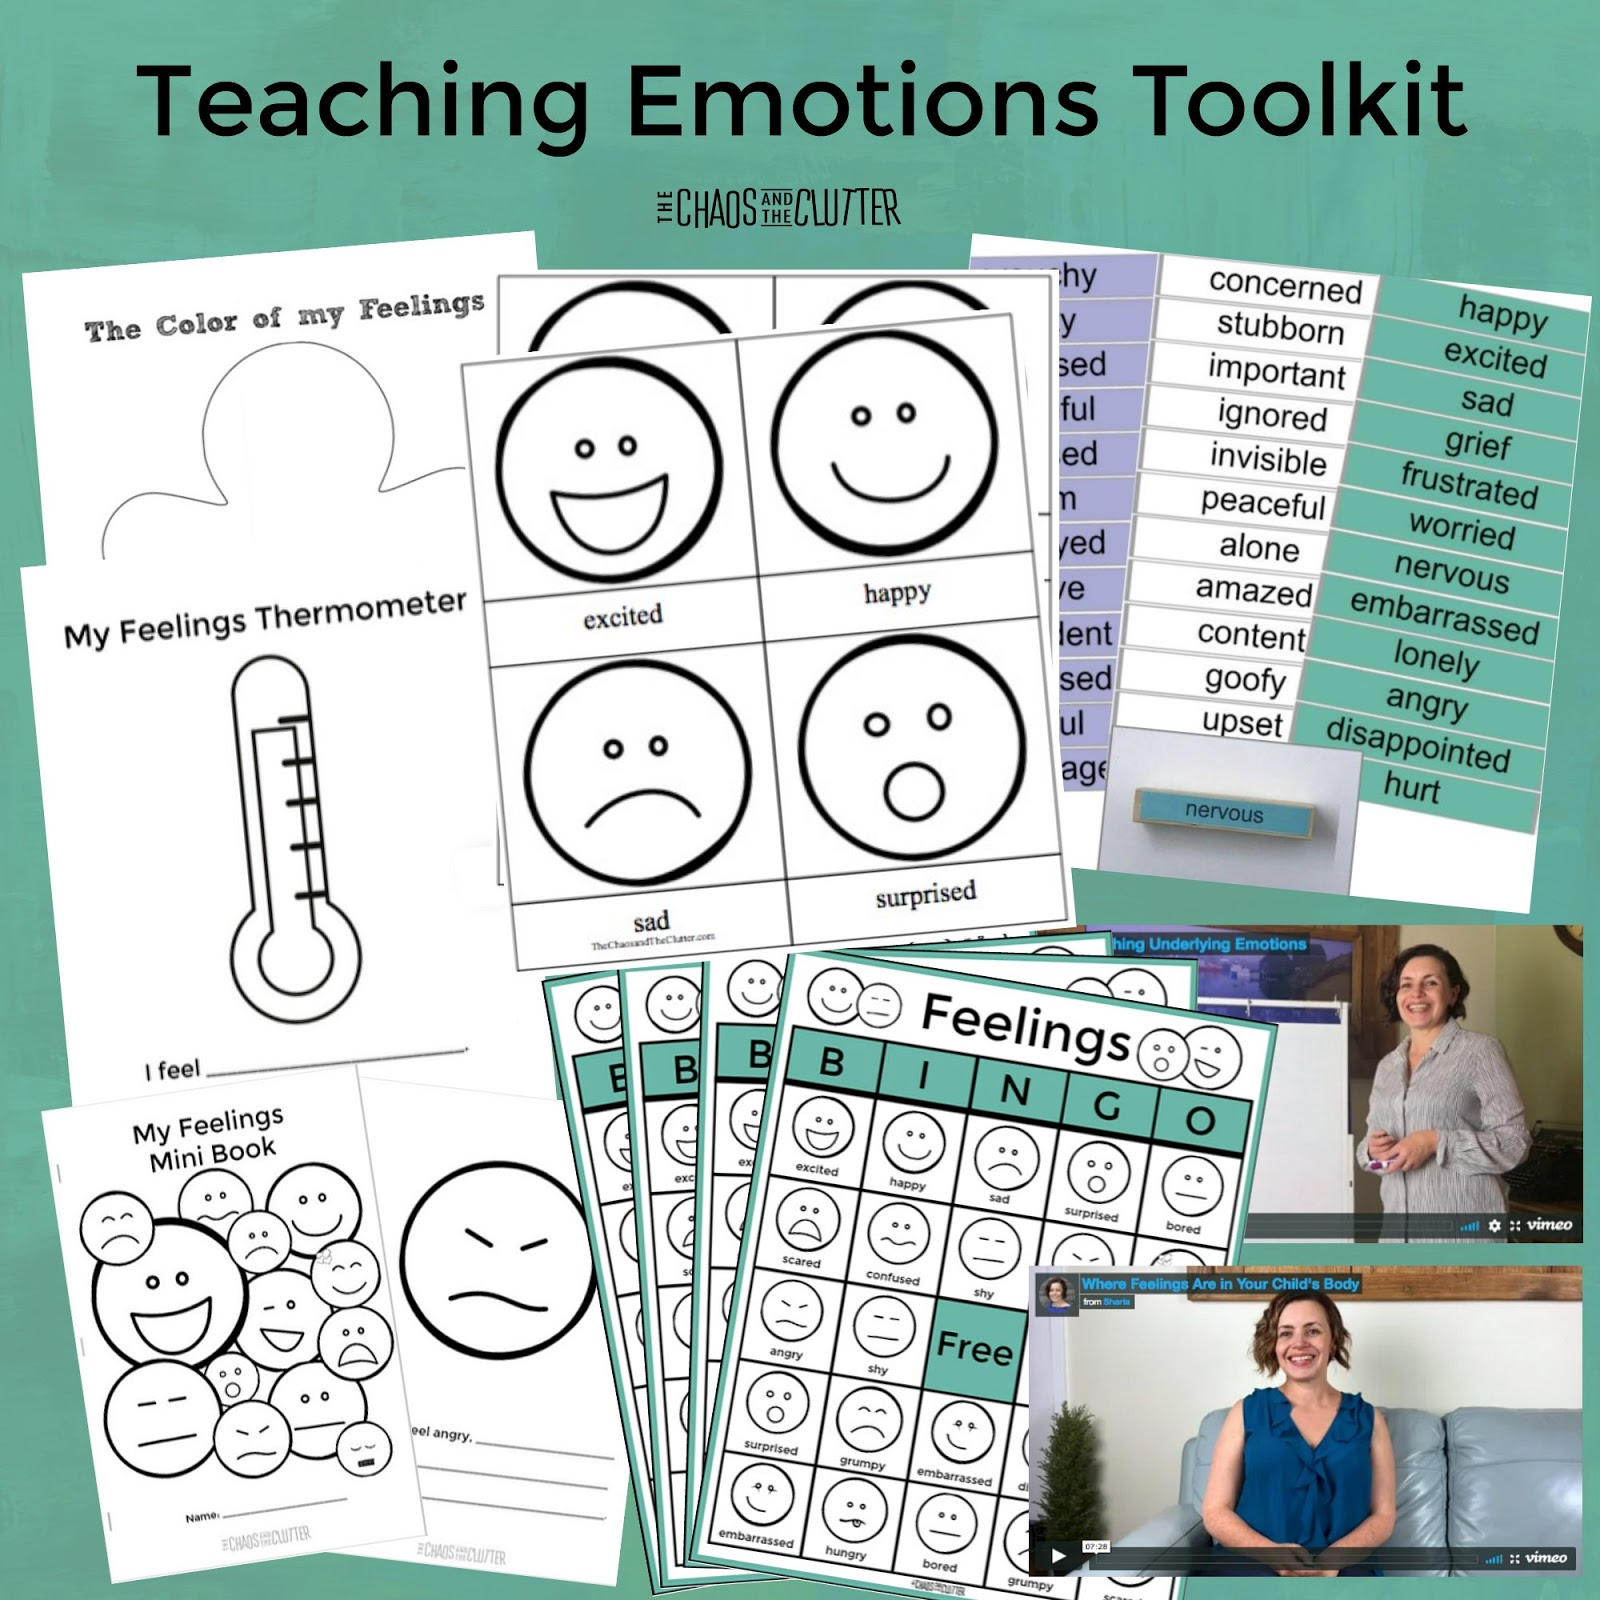 Teaching emotions toolkit for kids